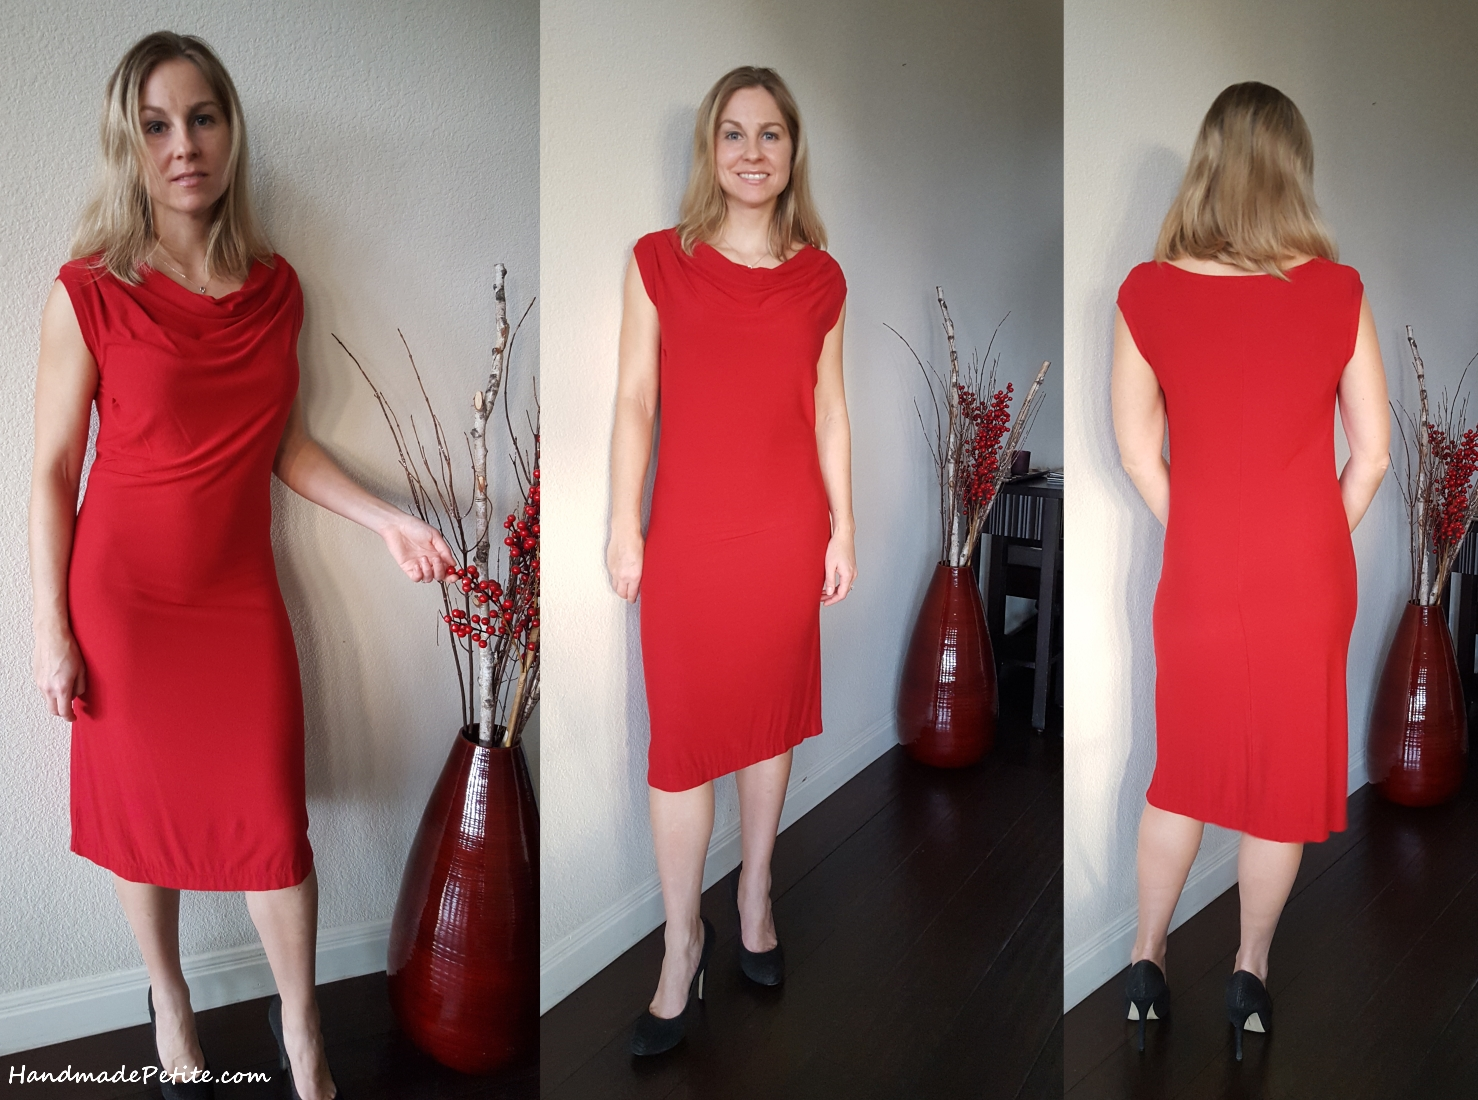 Sewing red dress with cowl neck using Simplicity 1716 pattern in red rayon jersey knit